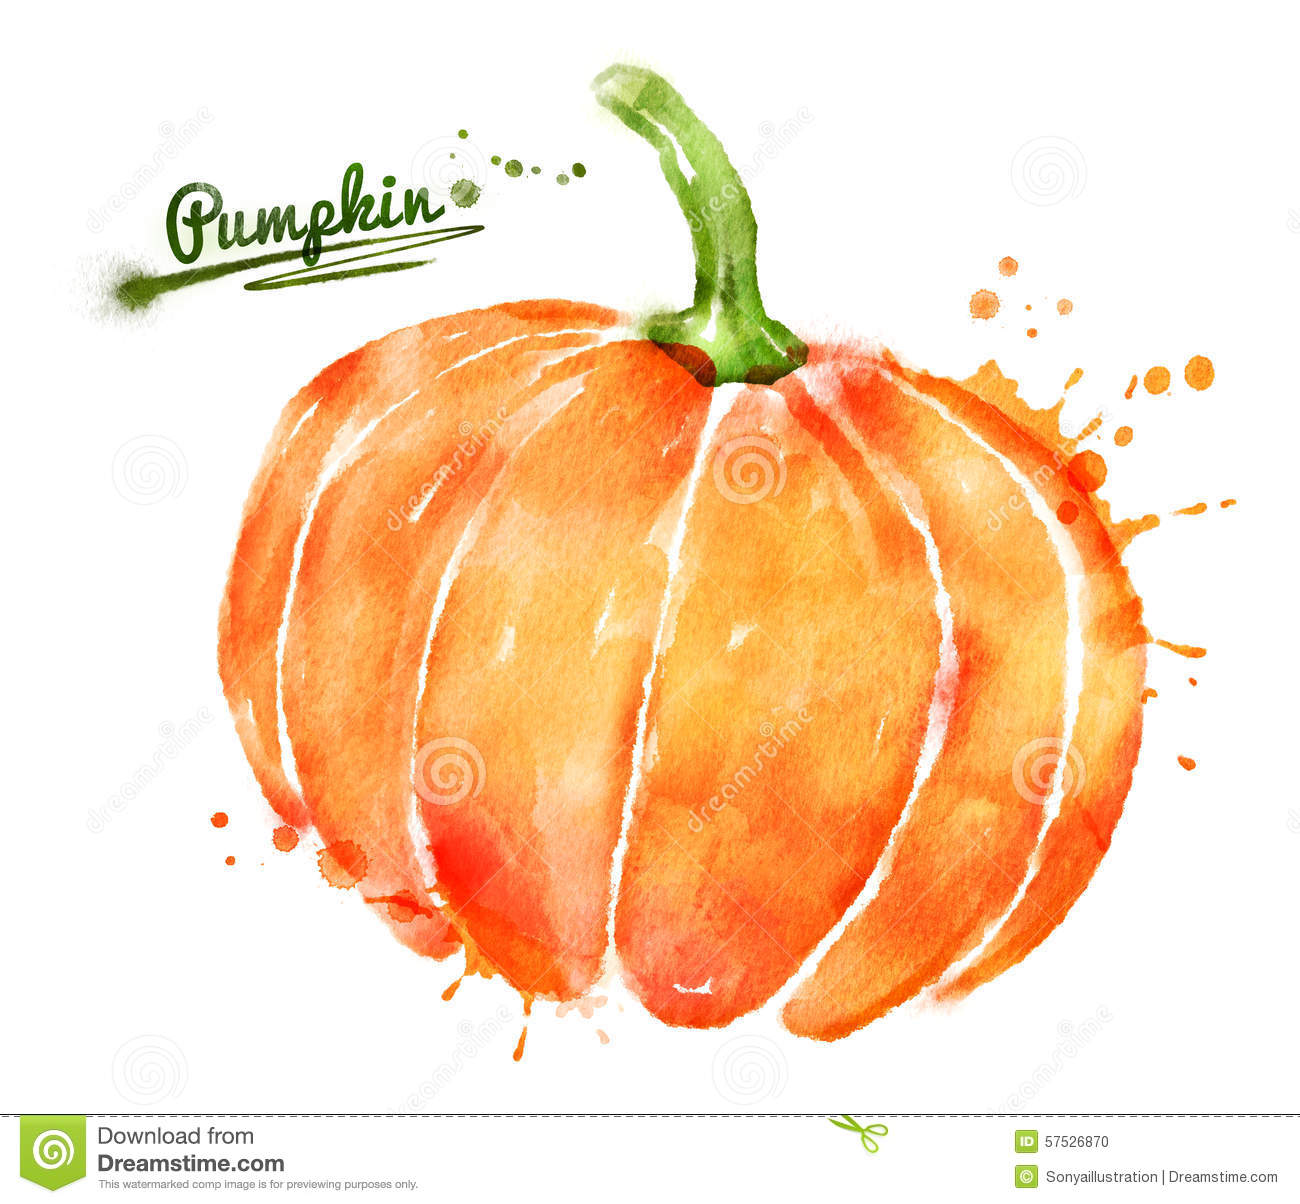 Watercolor pumpkin clipart free - ClipartFest png freeuse download